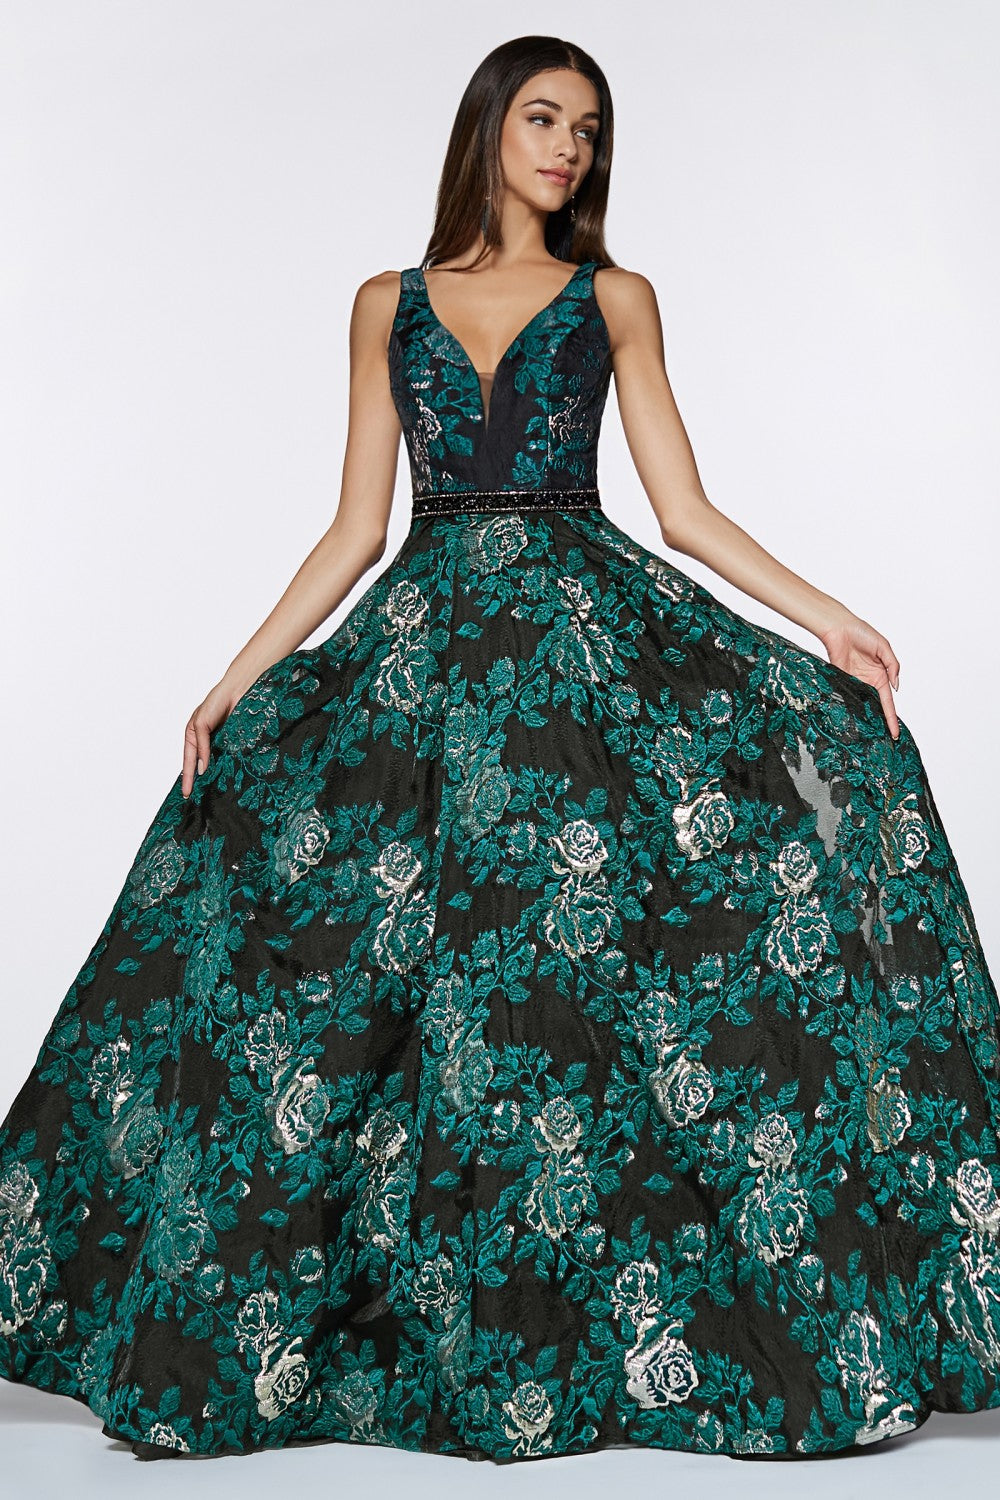 Brocade Floral Ball Gown With Beaded Belt And Pockets